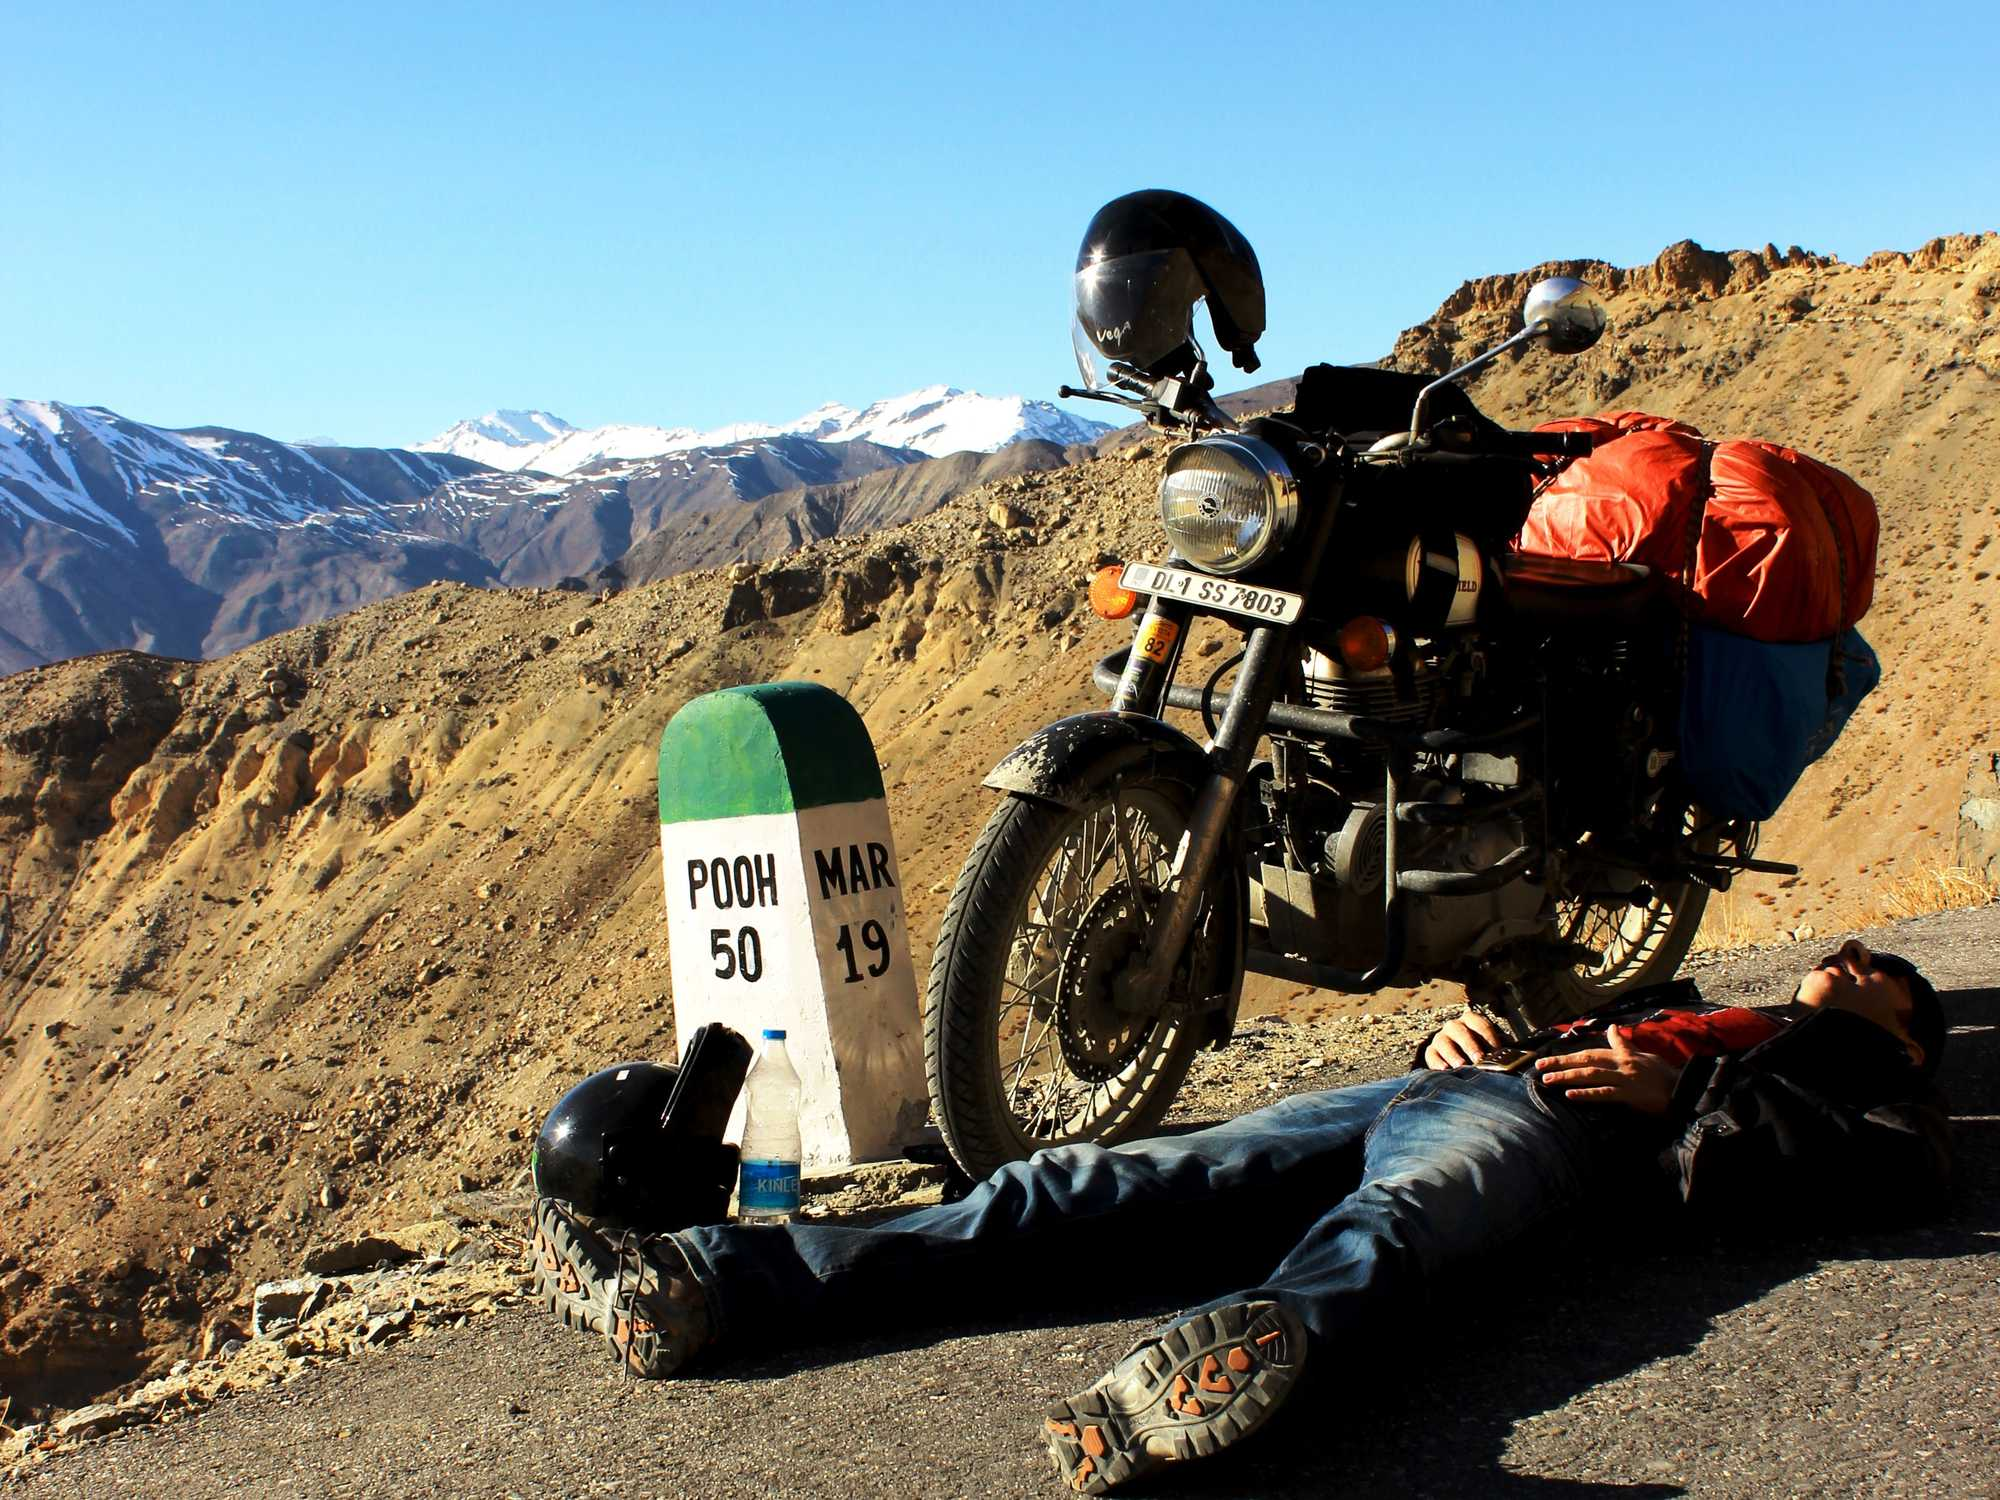 What precautions should I take when motorbiking in India?